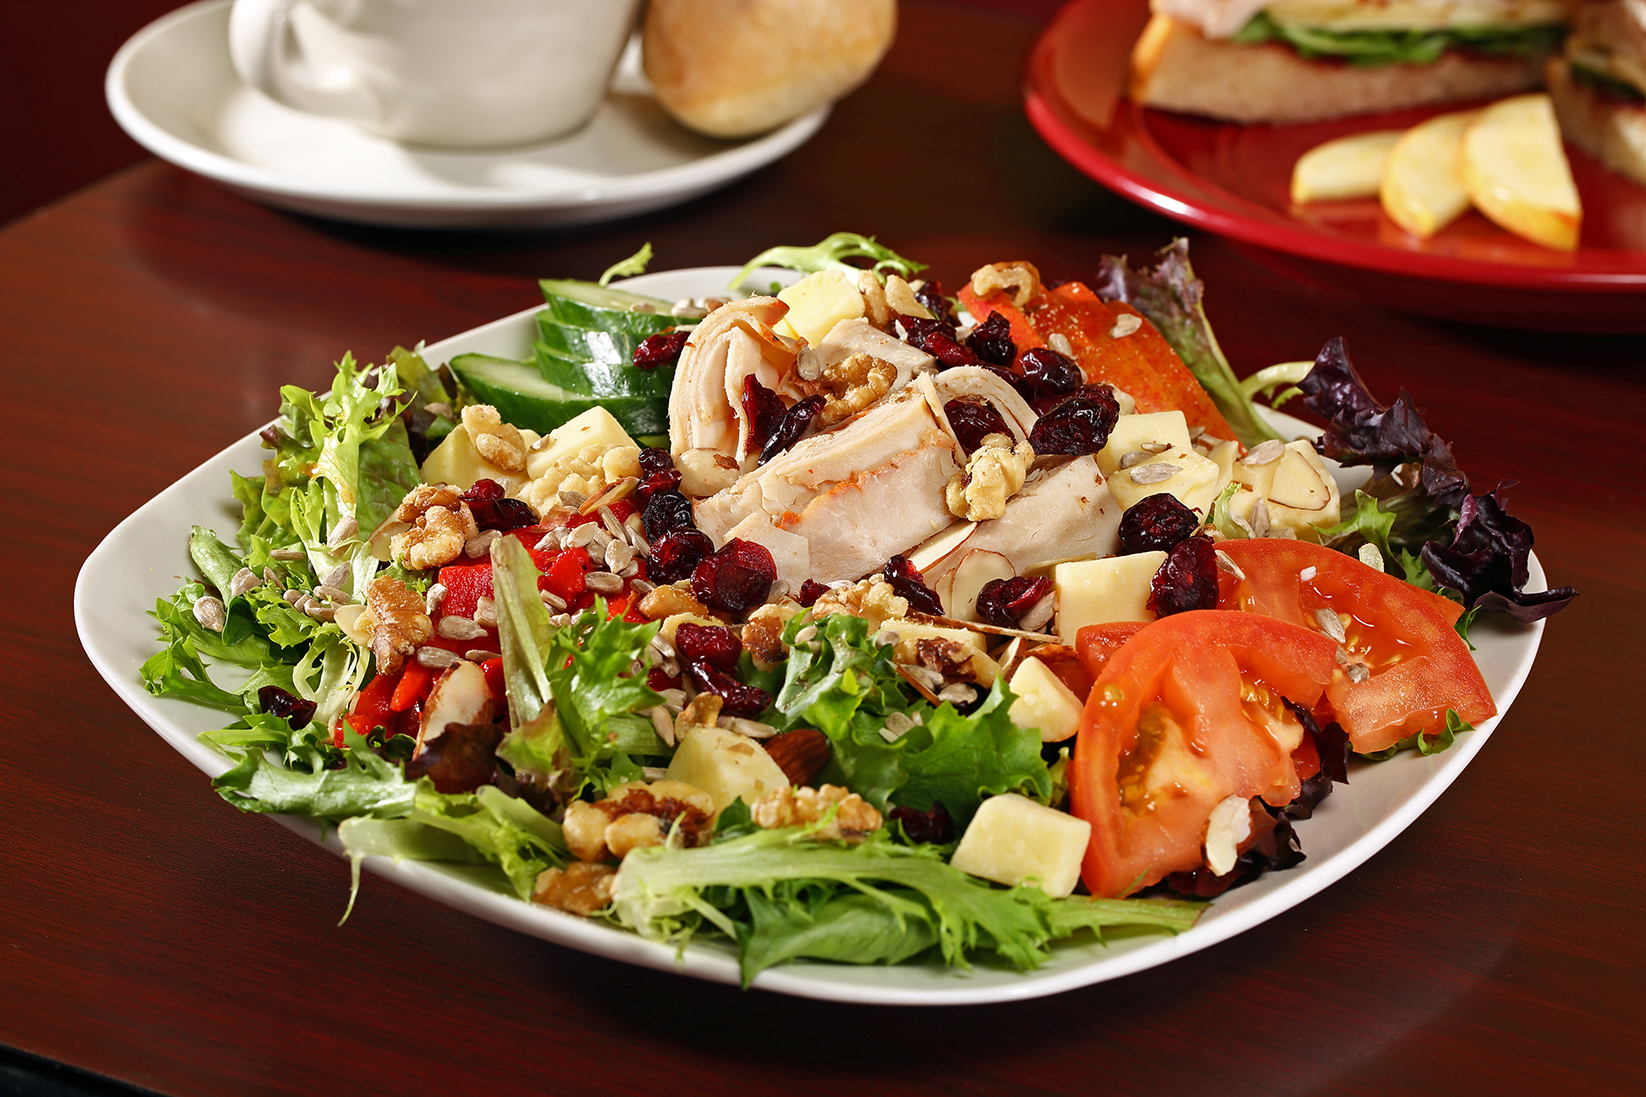 This is a photo of a beautiful salad with greens and tomatoes and raisins, beets and more on a table.